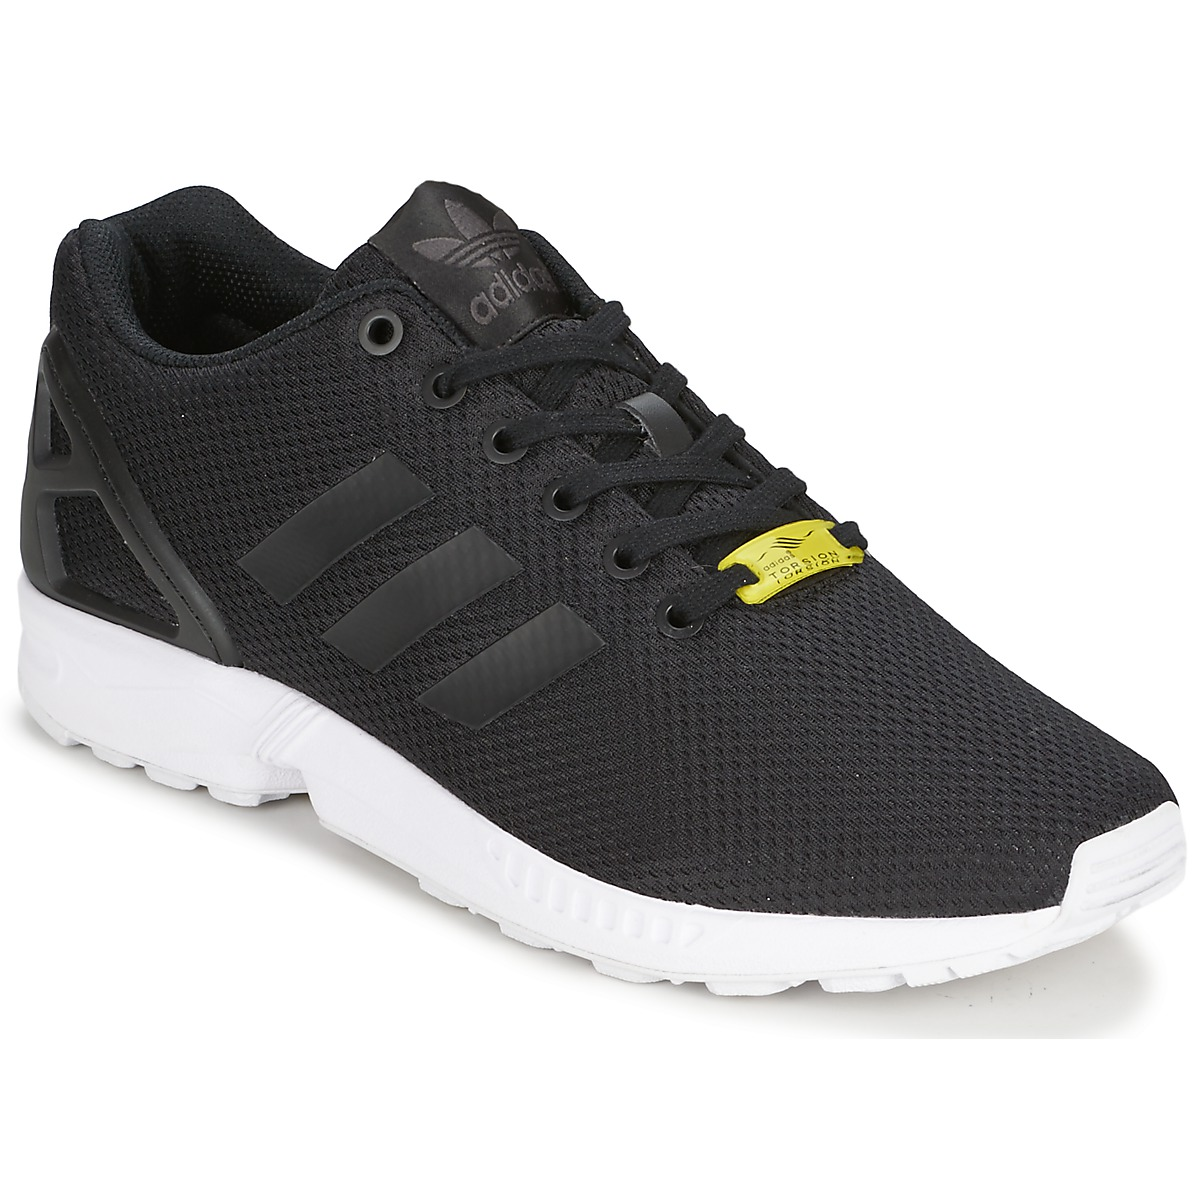 new arrival a3e16 b64ce adidas ZX Flux Trainers | Compare Prices at FOOTY.COM